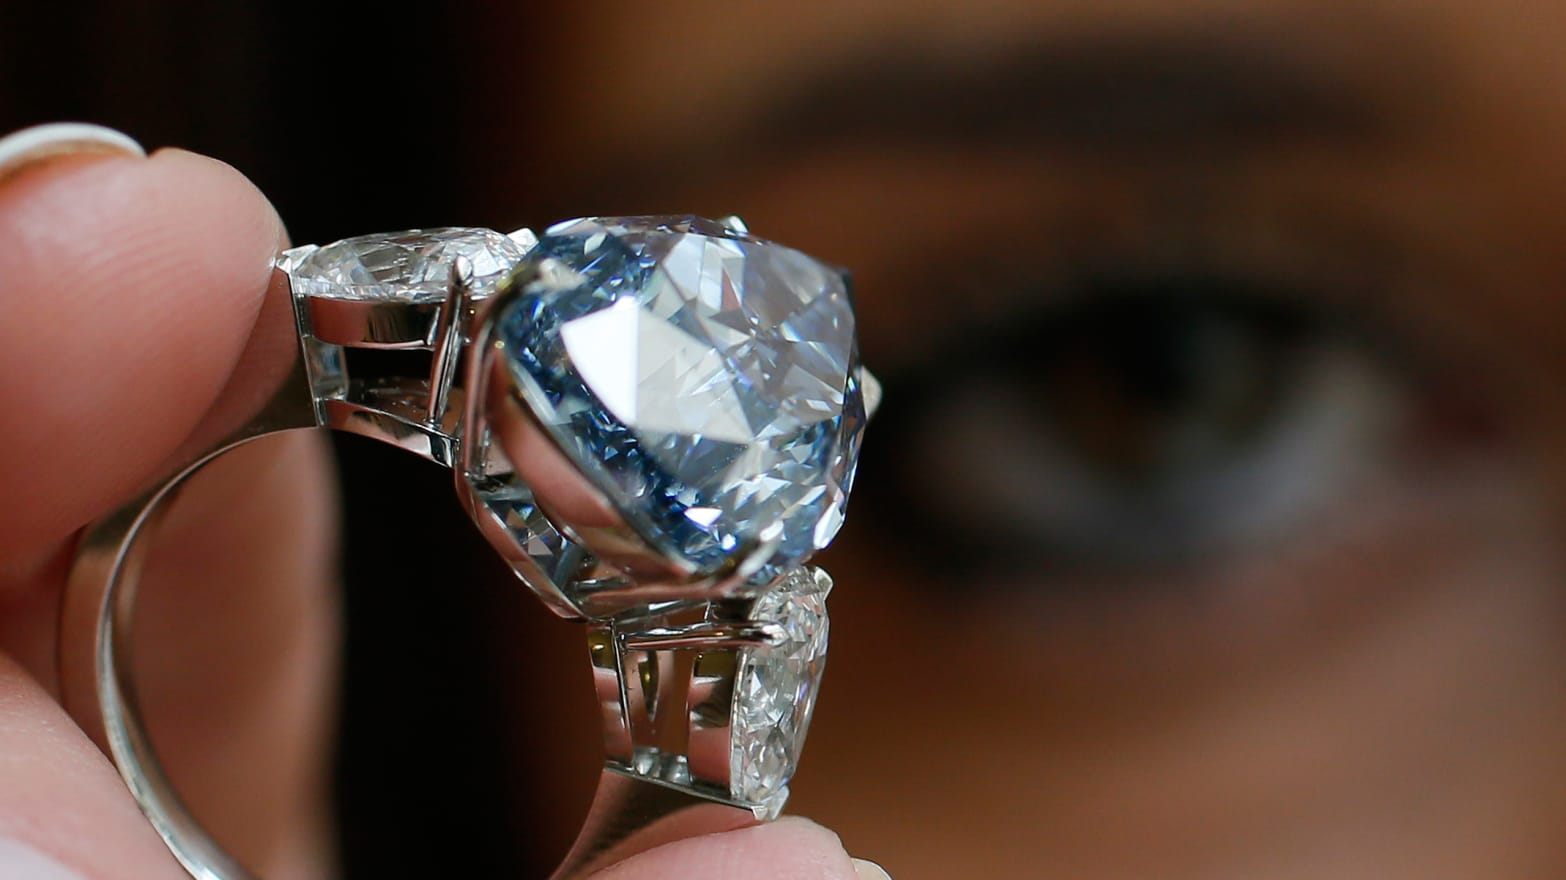 Can Diamonds Detect Cancer?